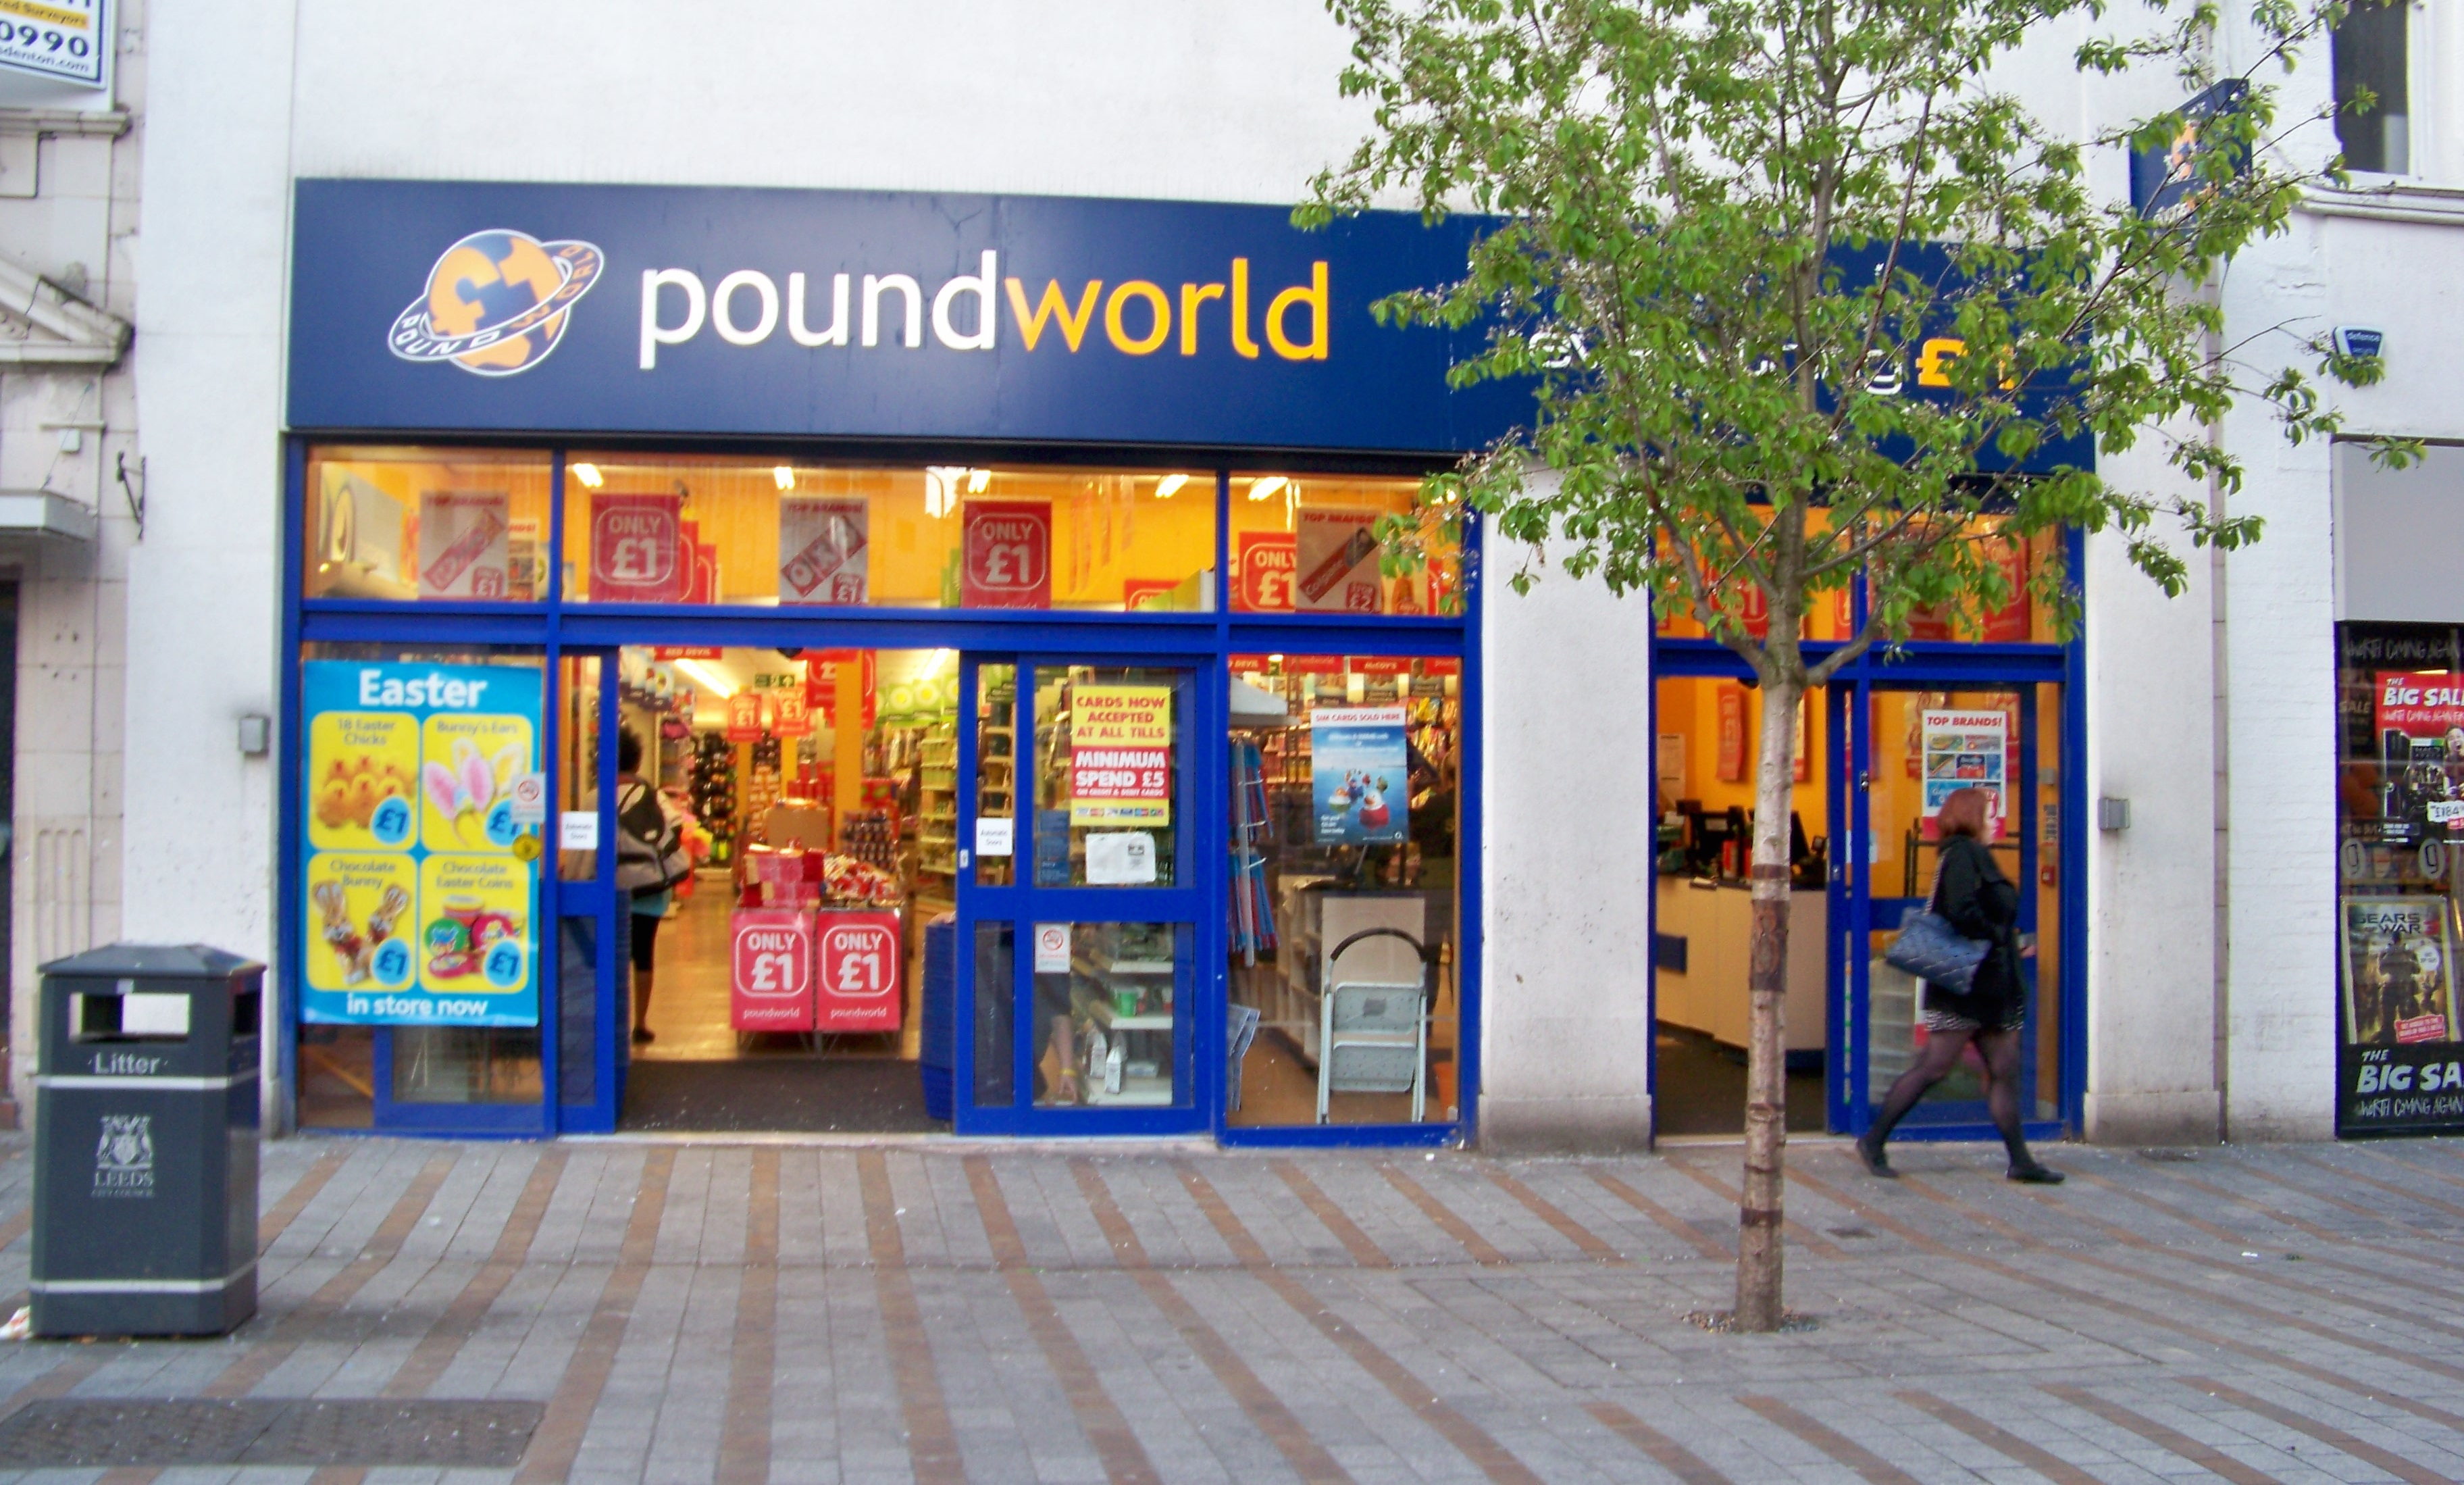 Deloitte named administrators to UK discount retailer Poundworld